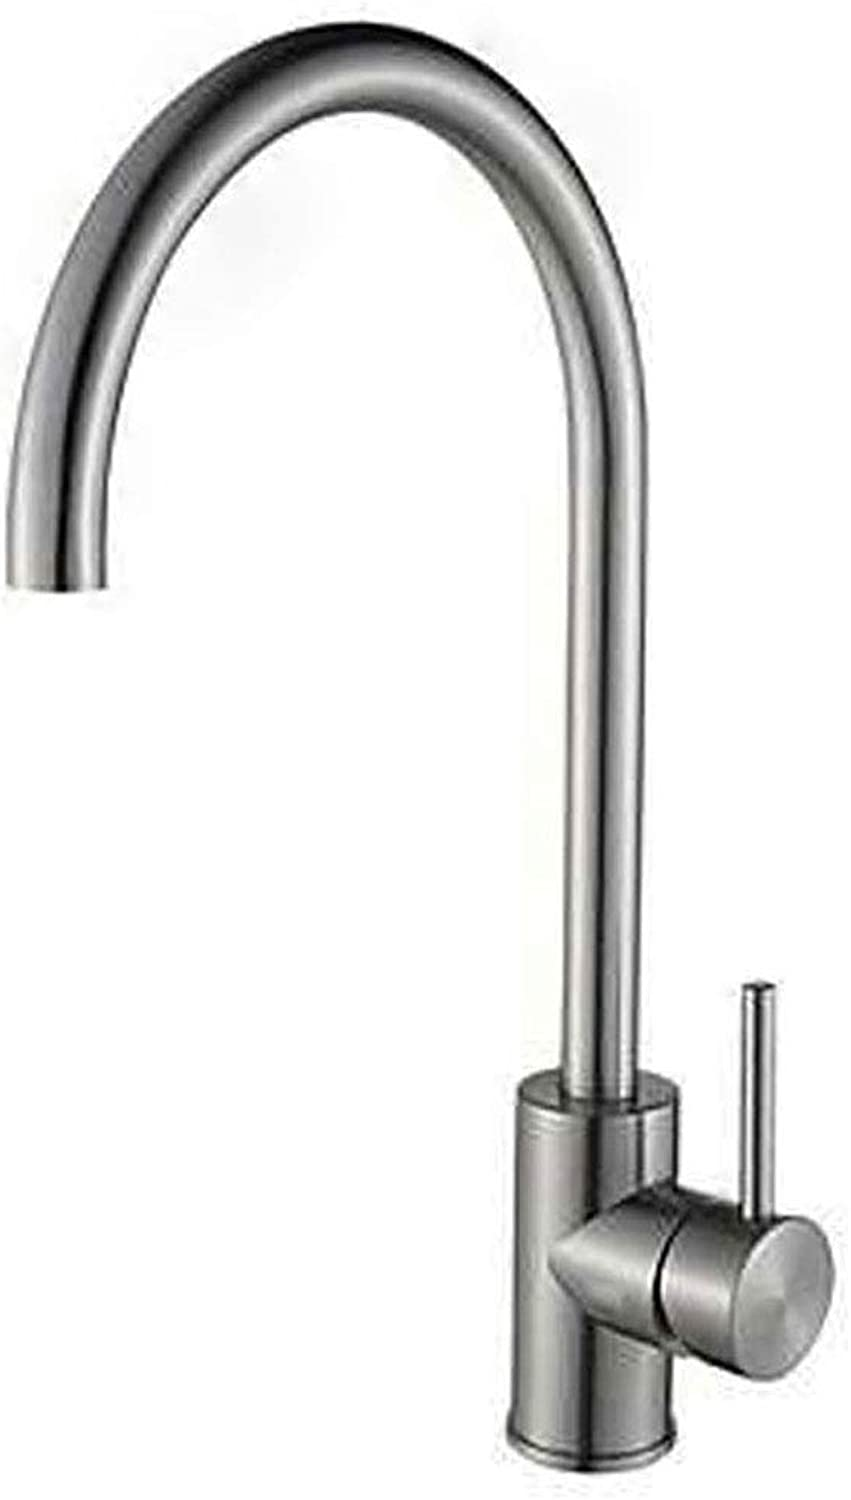 LYCY Kitchen Faucet 304 Stainless Steel 360 Degree Turn Hot And Cold Water Vegetable Basin Faucet